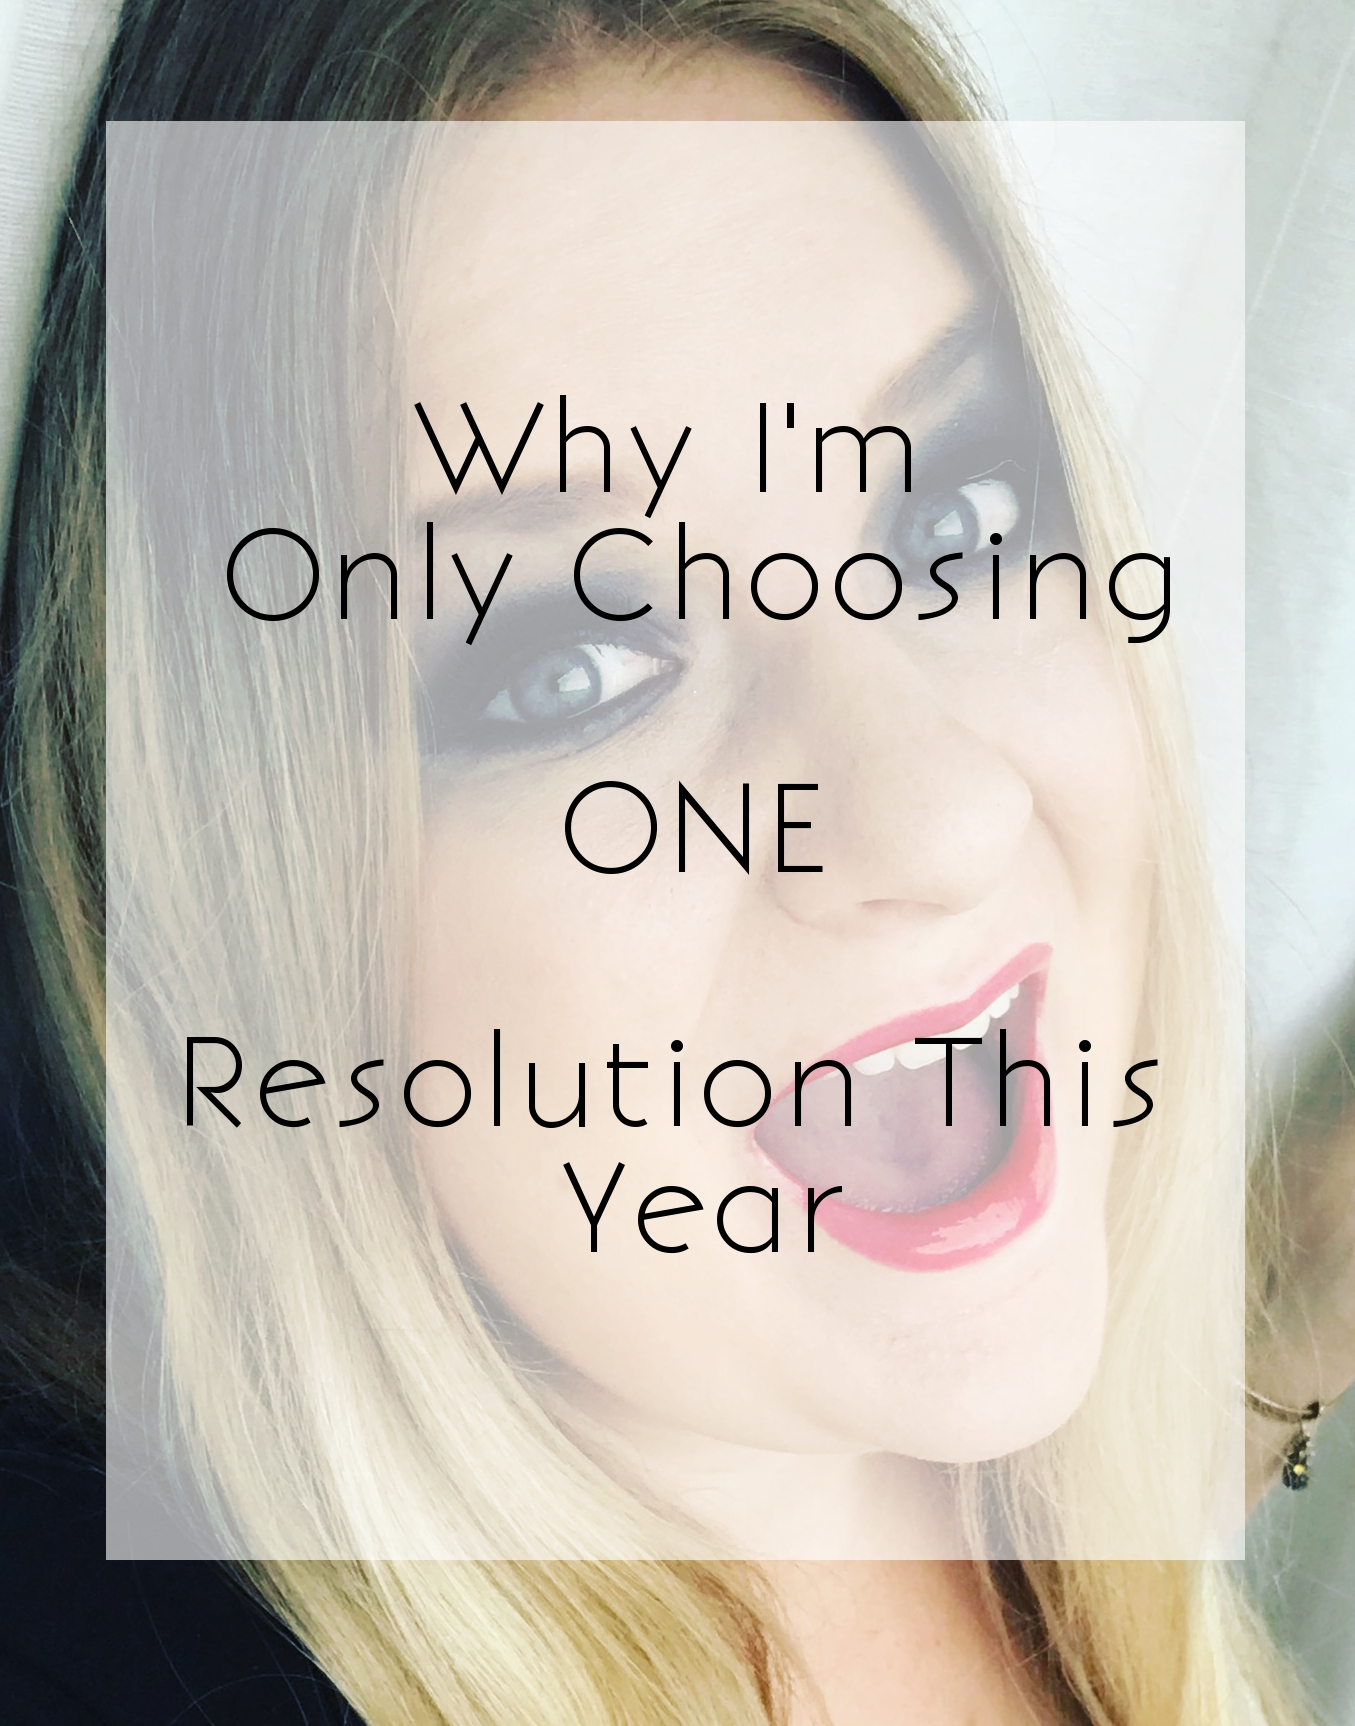 Why I'm Only Choosing One Resolution this year